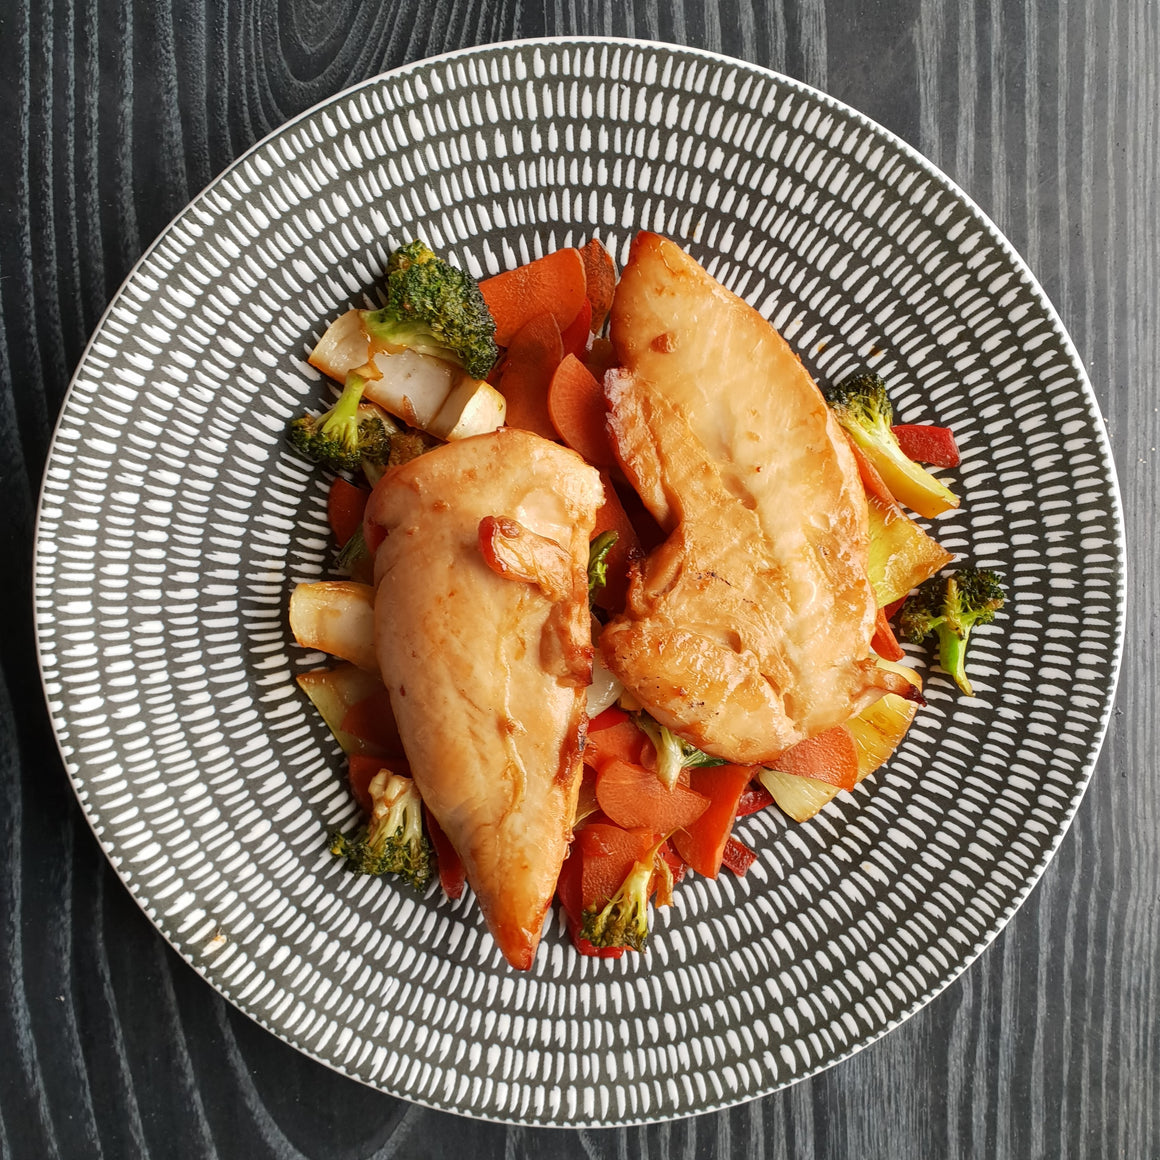 Ginger Soy Chicken w/ Stir-Fried Veggies - Foddies Low FODMAP